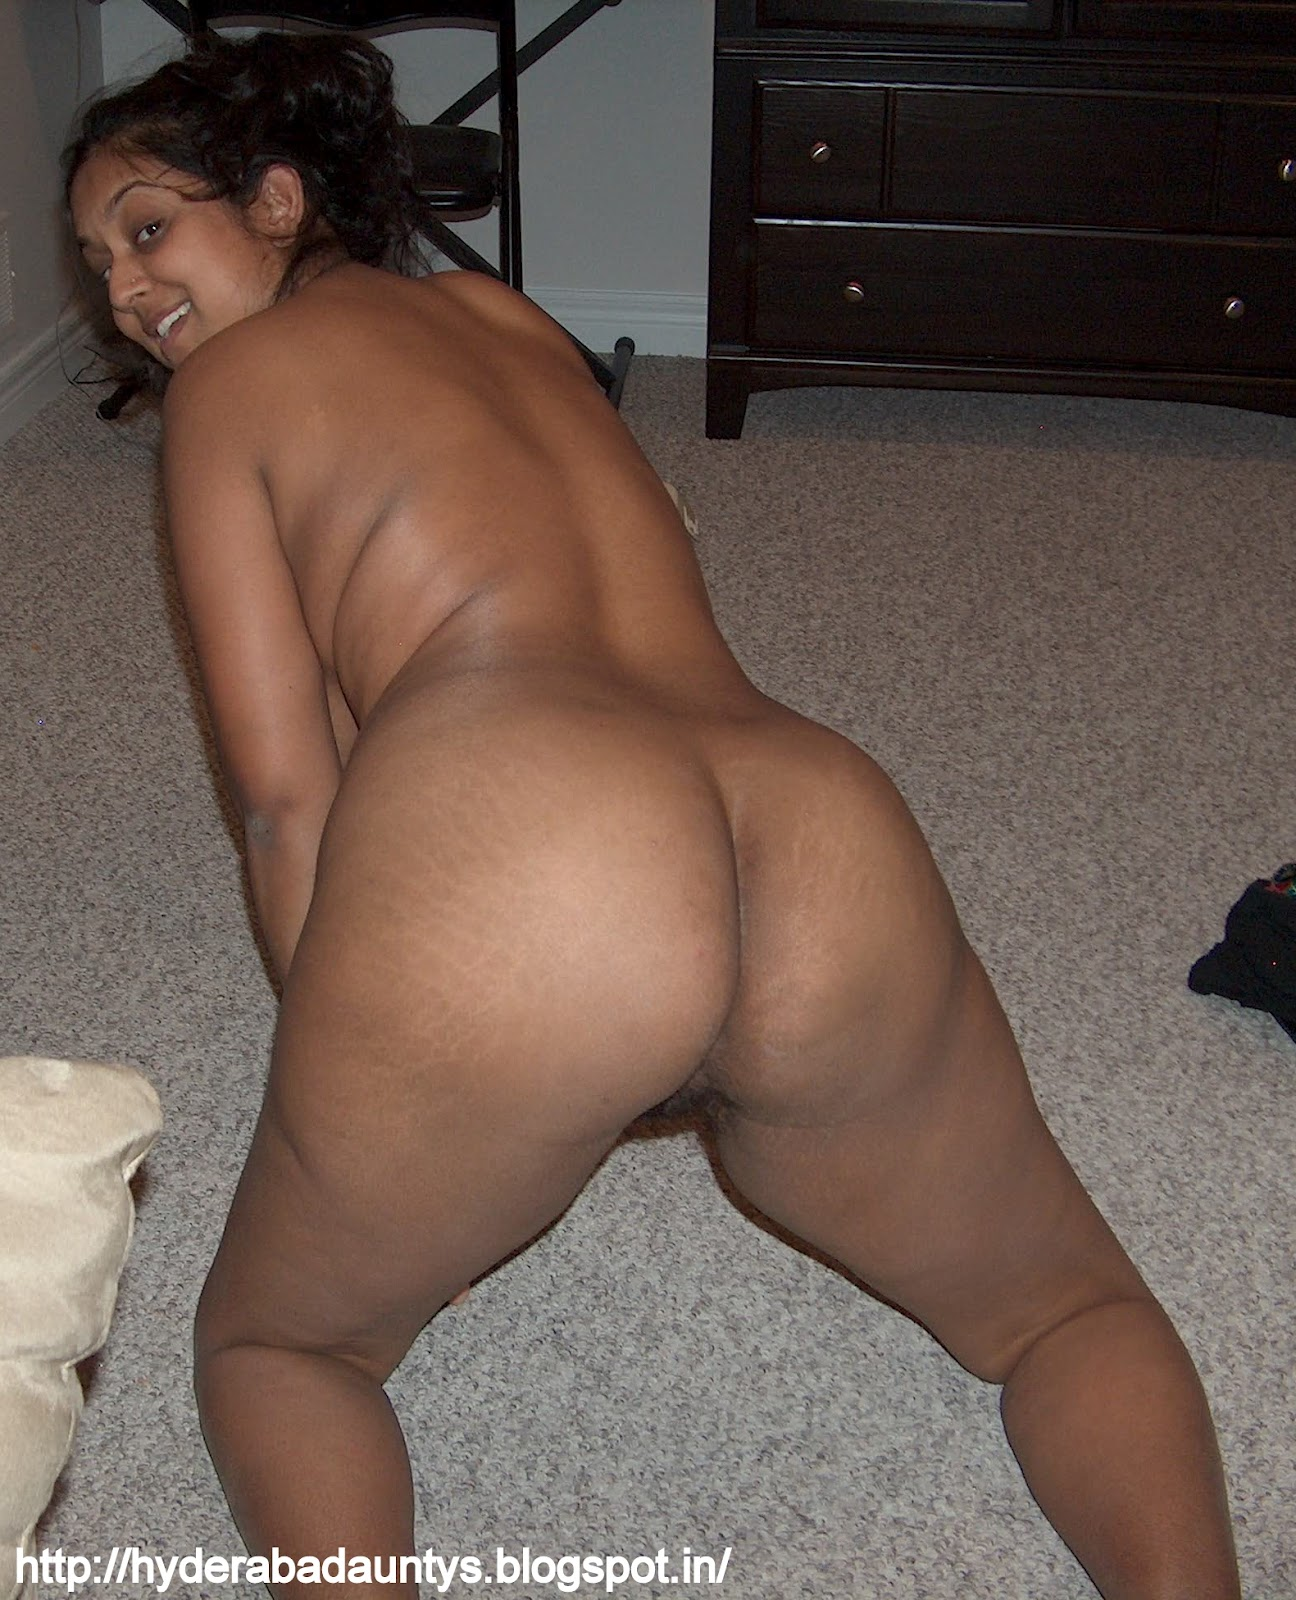 Naked Girls: Mallu aunty Revathi showing her big ass hole nude ...